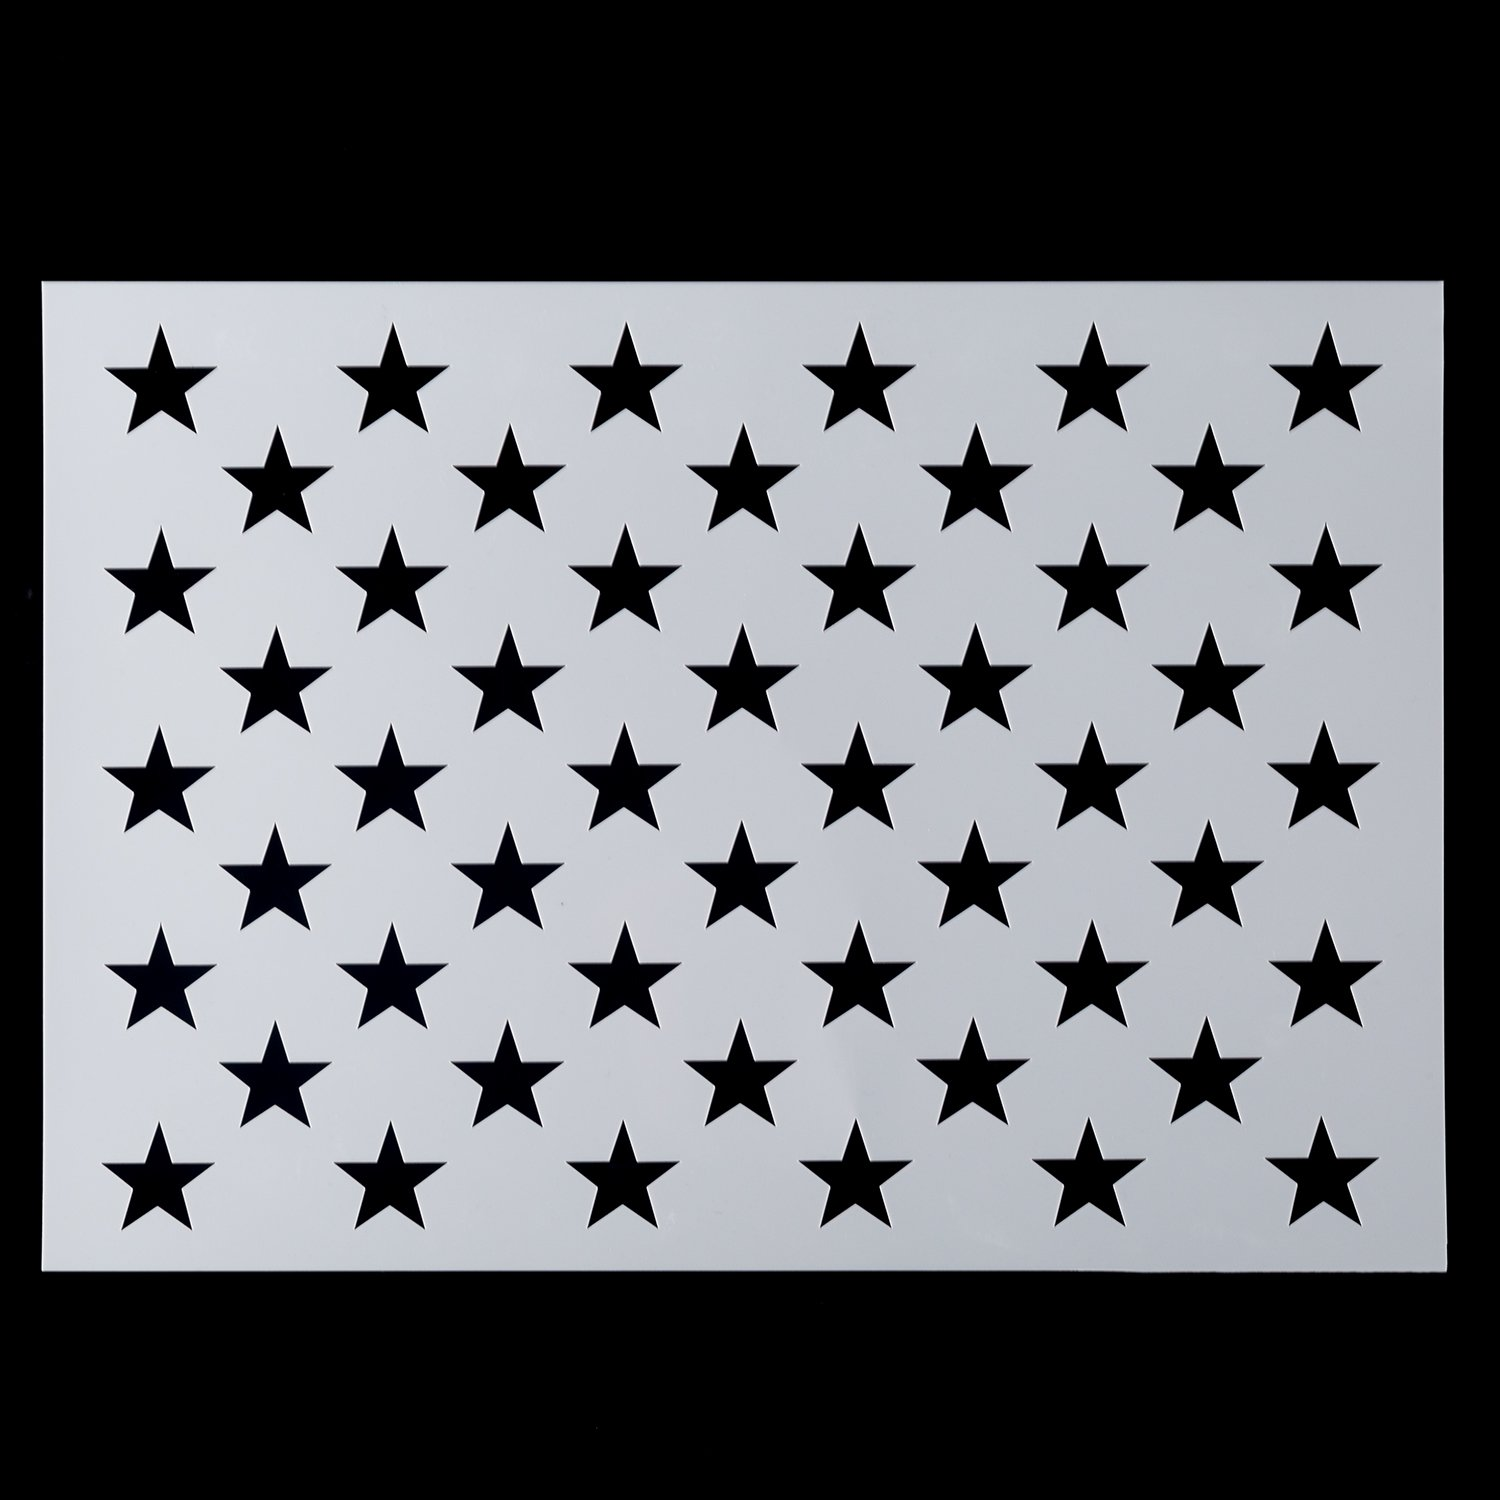 American Flag 50 Star Stencil for Painting on Wood, Paper, Fabric, Glass, and Wall Art